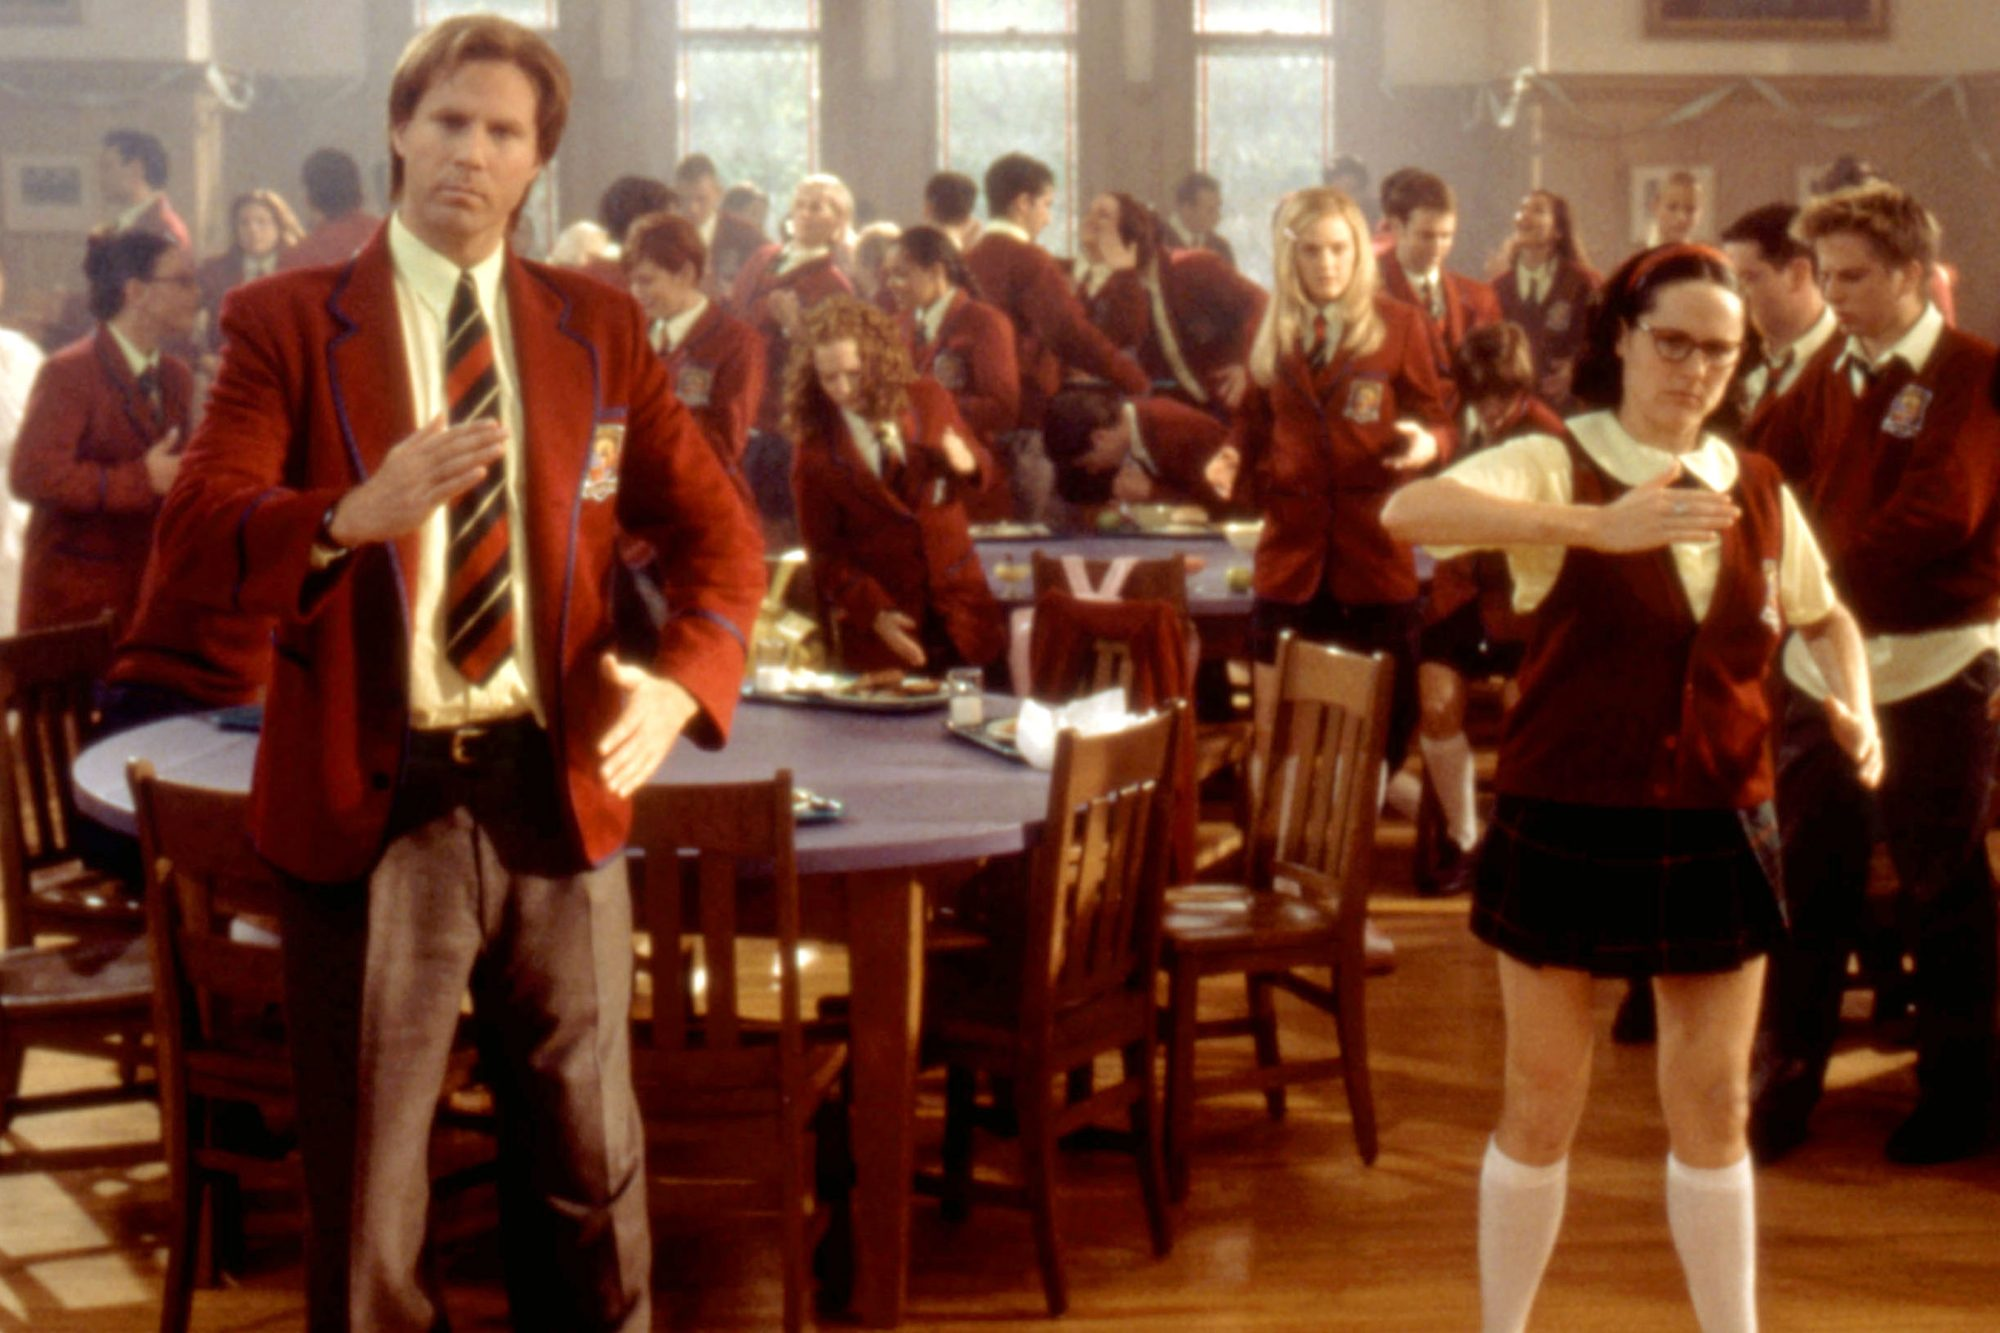 SUPERSTAR, Will Ferrell, Molly Shannon, 1999, (c)Paramount/courtesy Everett Collection